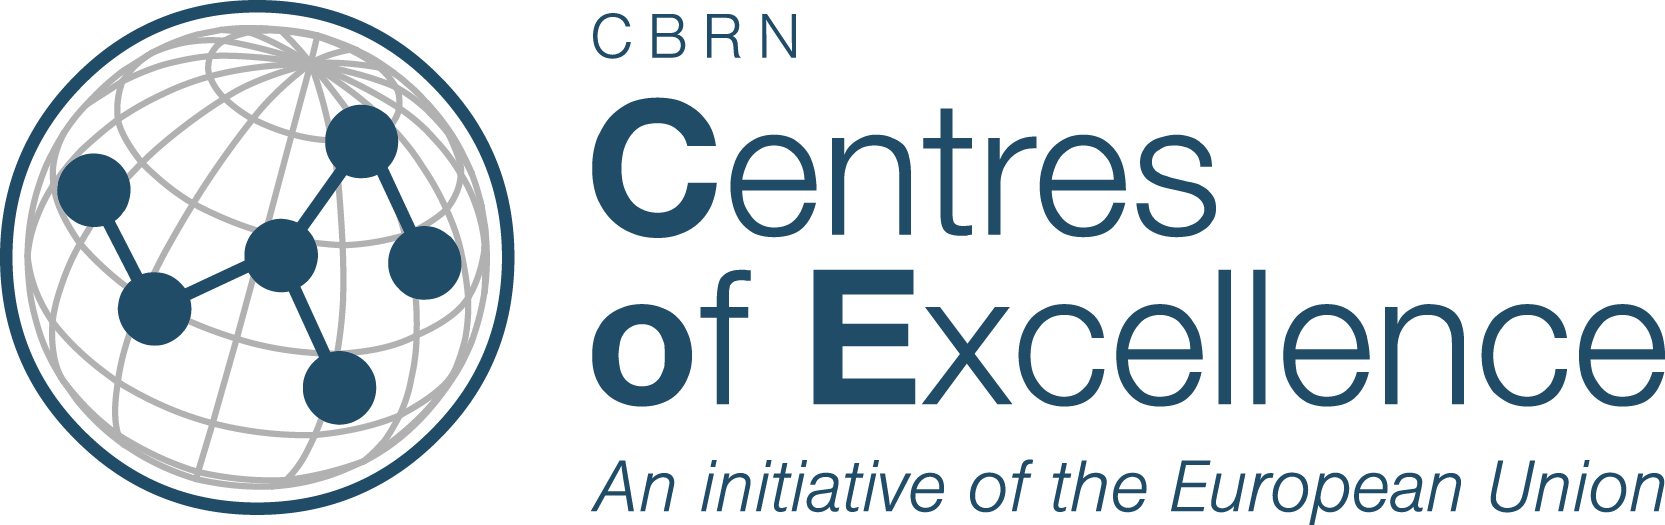 CBRN Centres of Excellence logo